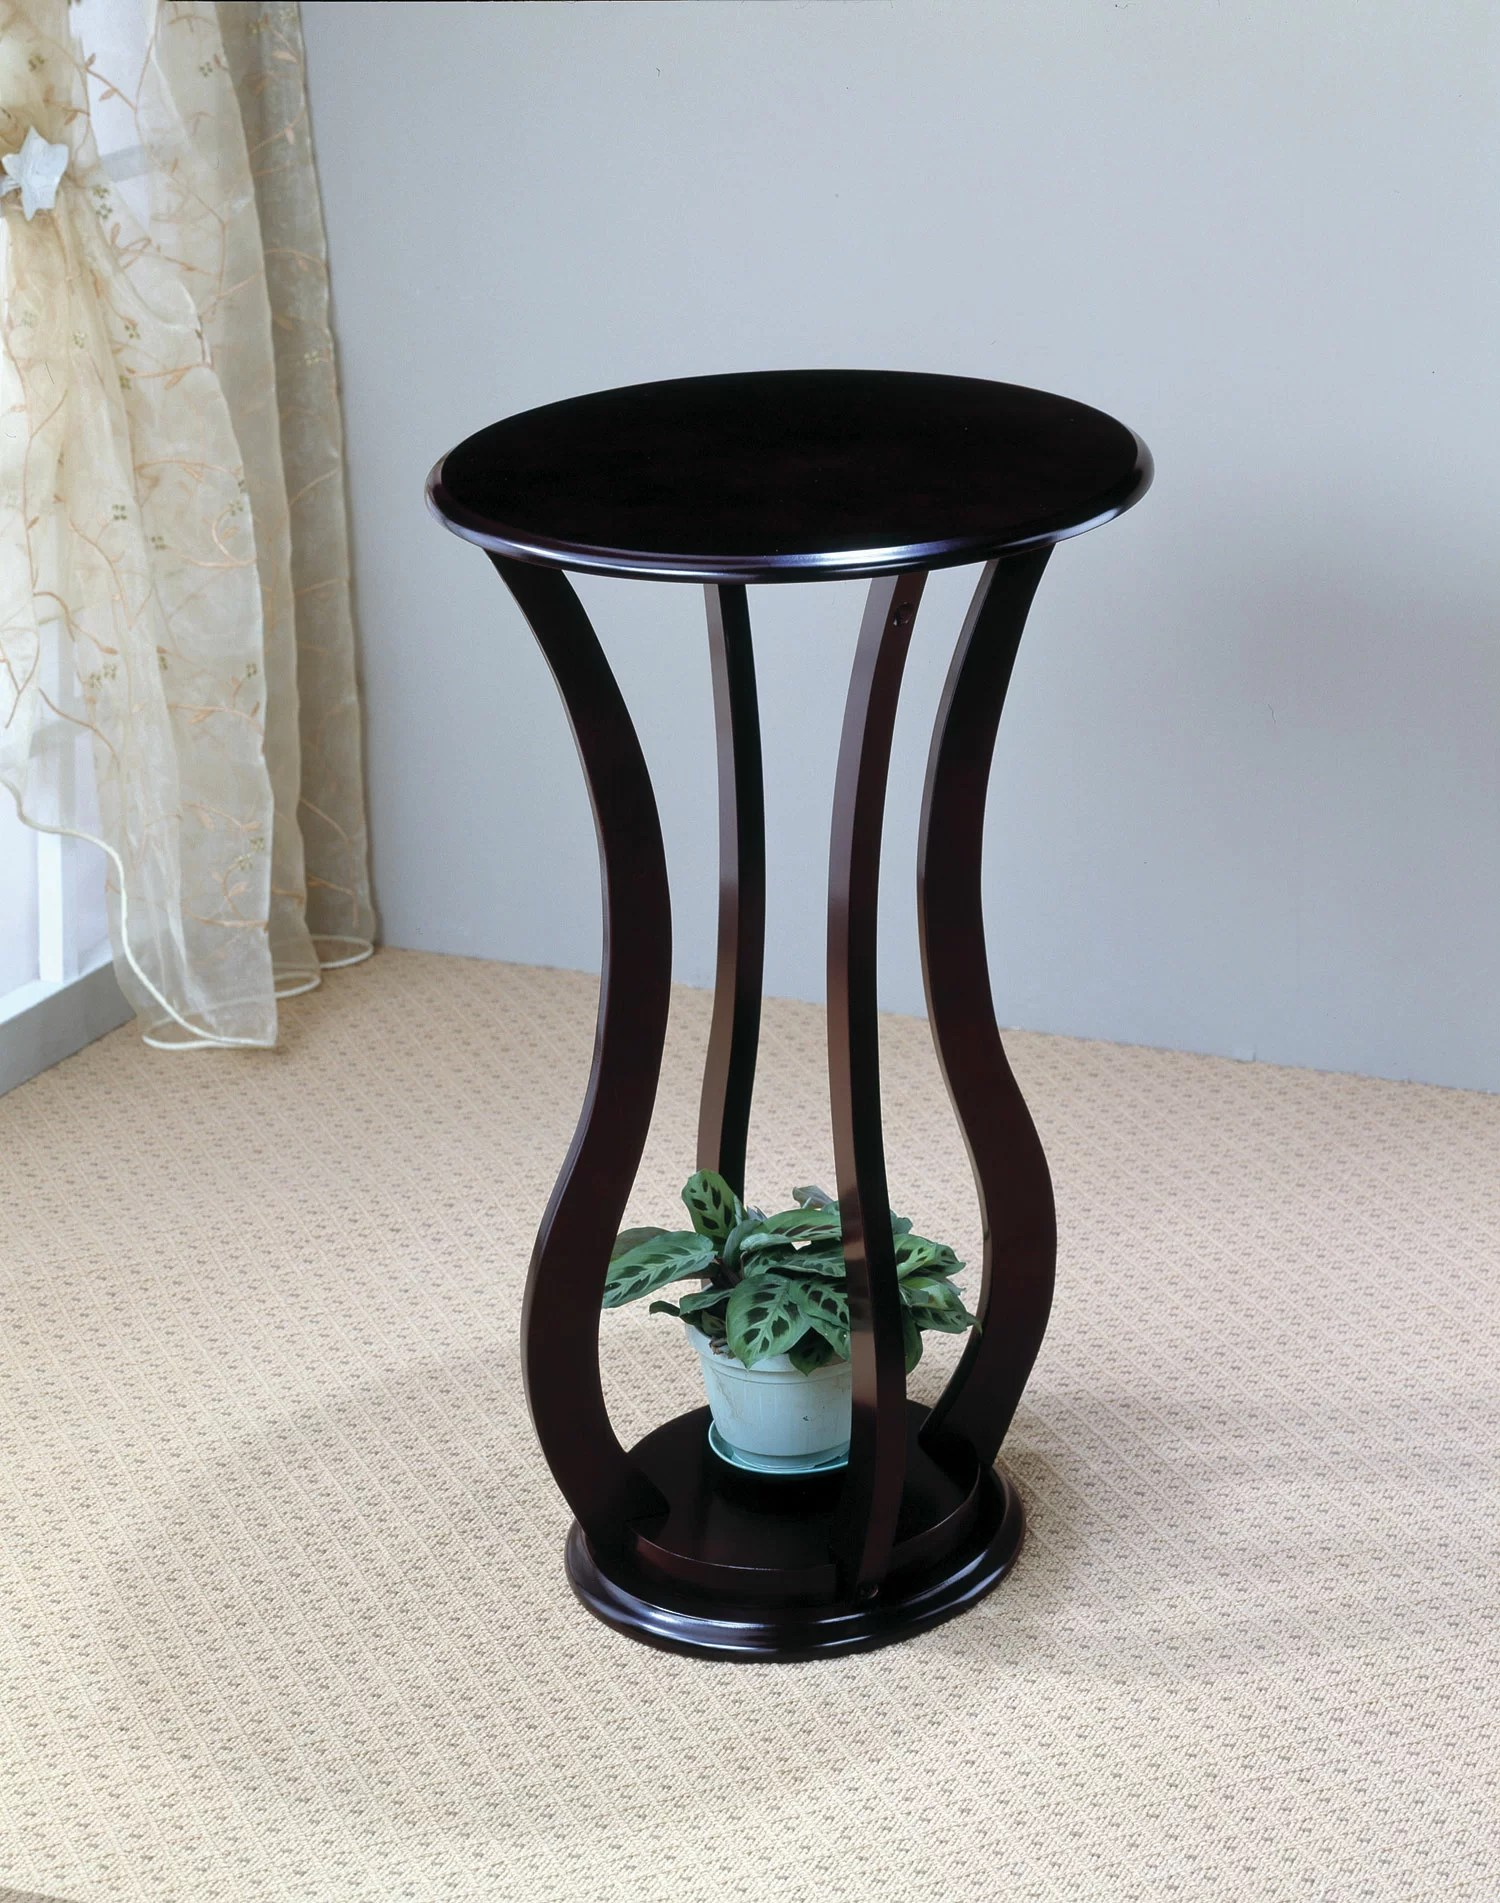 Pedestal Plant Stand Table Cherry Wood Furniture Display